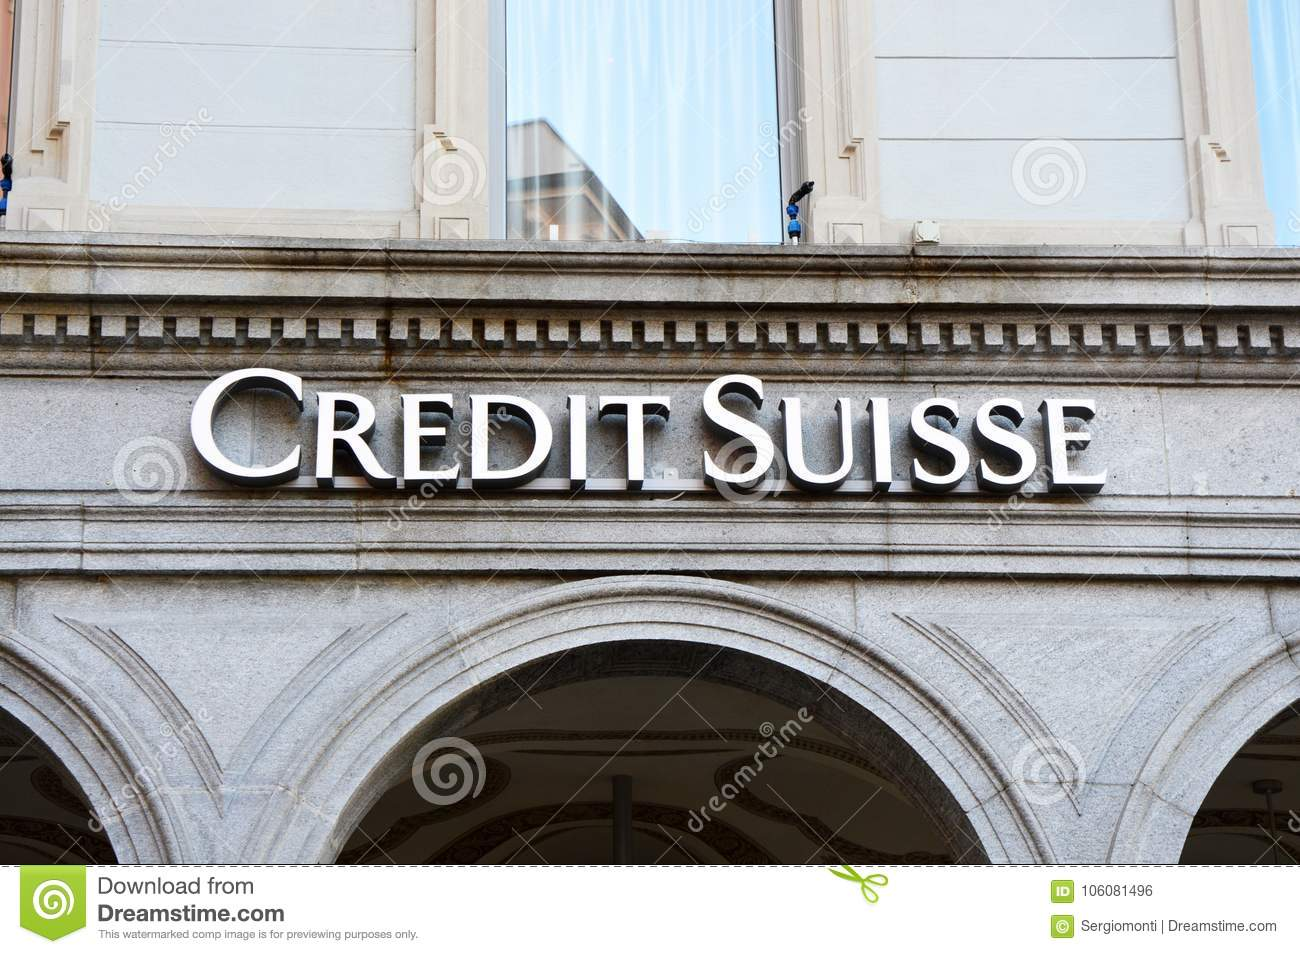 LUGANO, SWITZERLAND - NOVEMBER 27, 2017: Credit Suisse Group is a Swiss multinational financial services holding company that oper